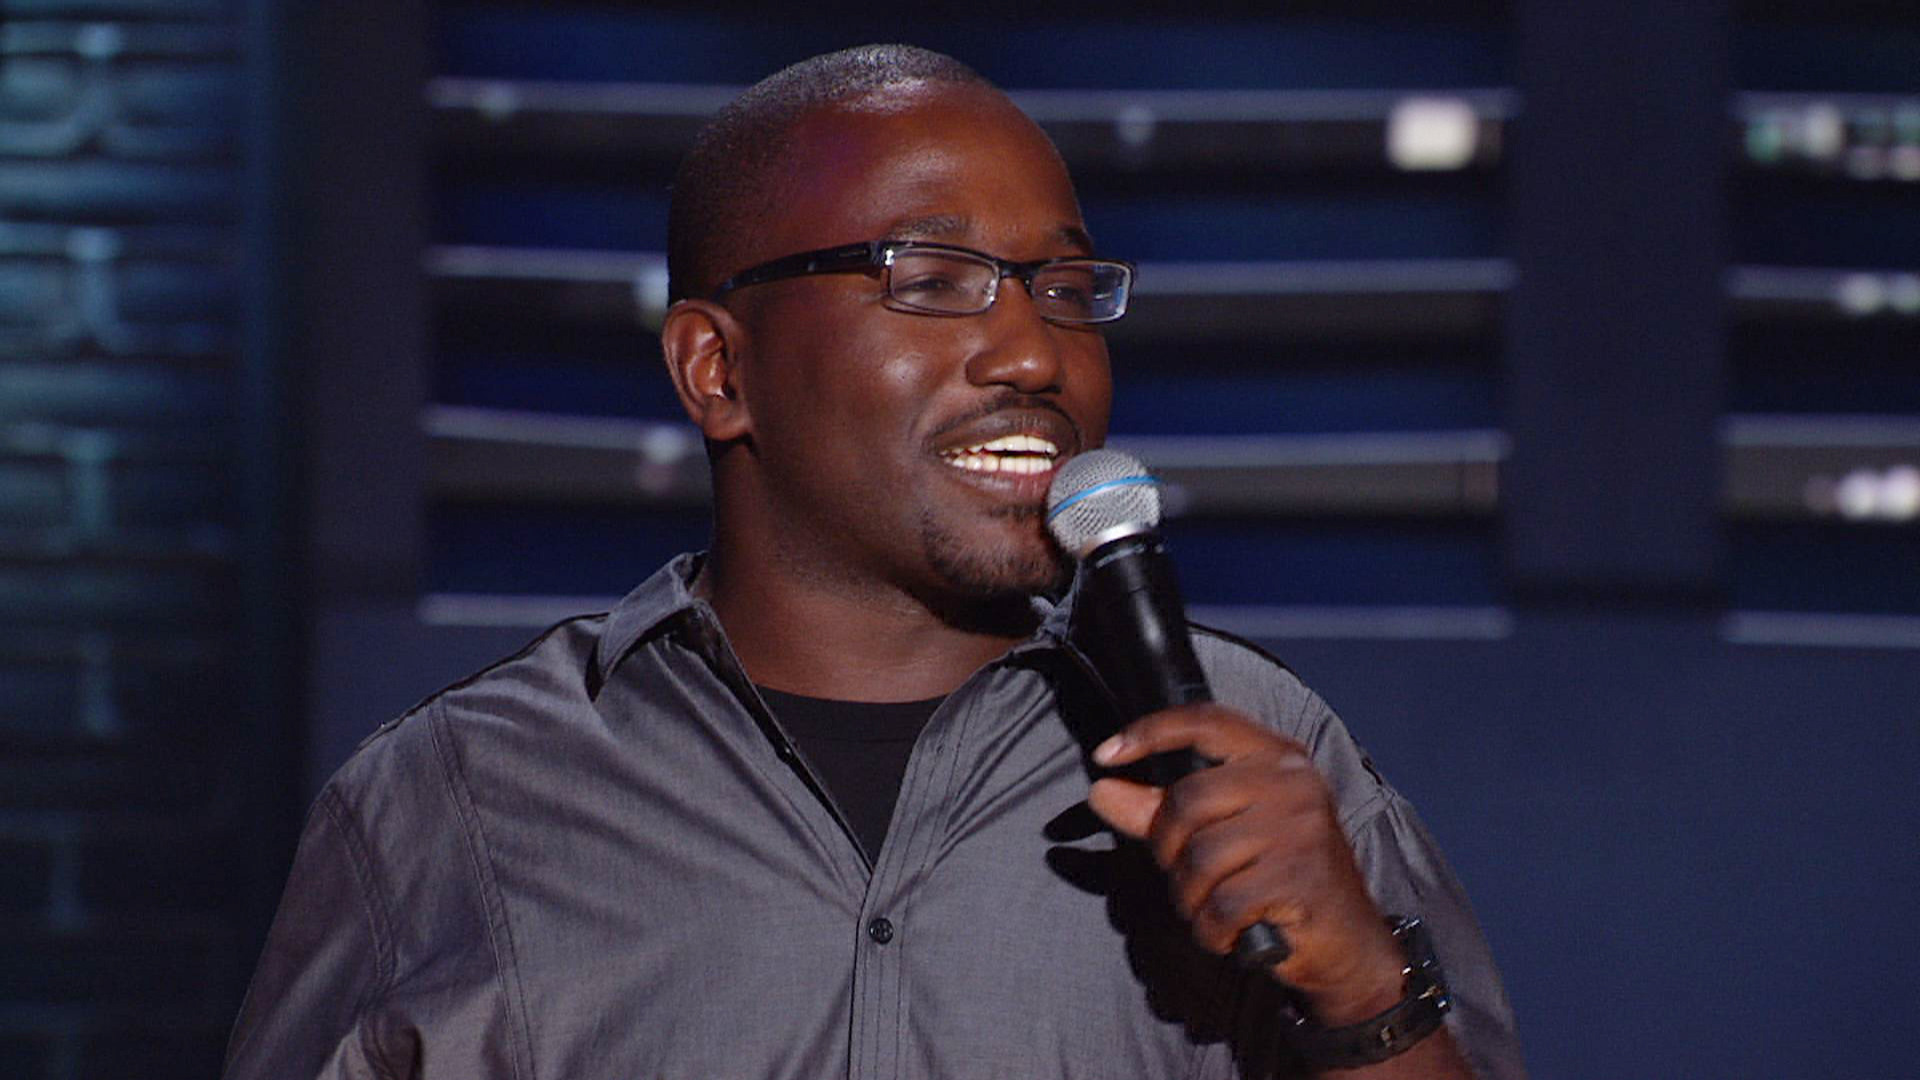 Hannibal Buress - Super Drunk Women